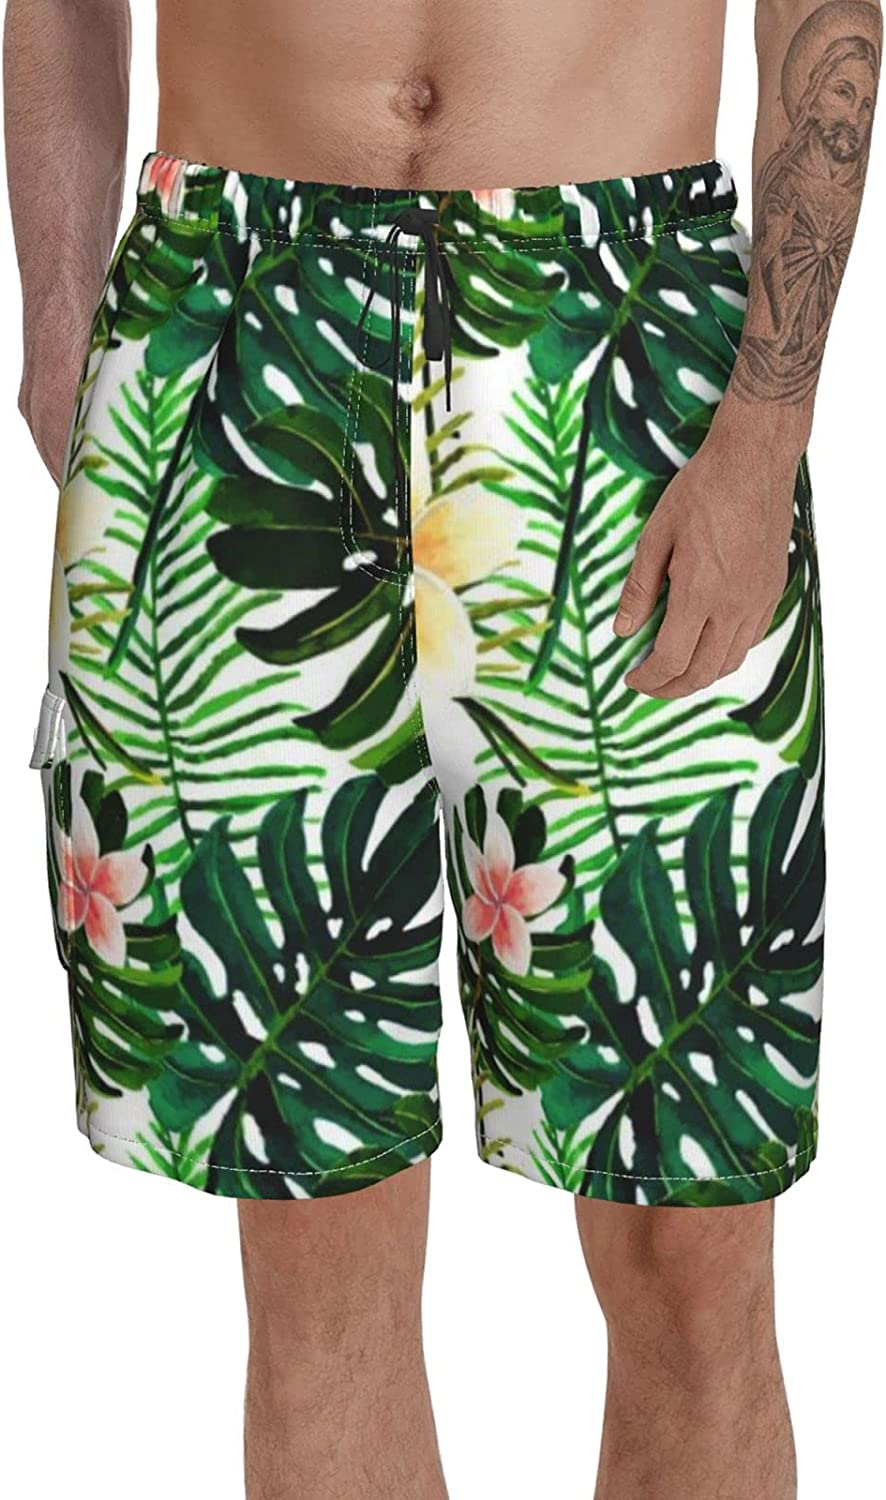 Printed Swimming Trunks for Men Volley Shorts Parrot Tropical Flowers Leaves Knee Length Bathing Suit with Pockets